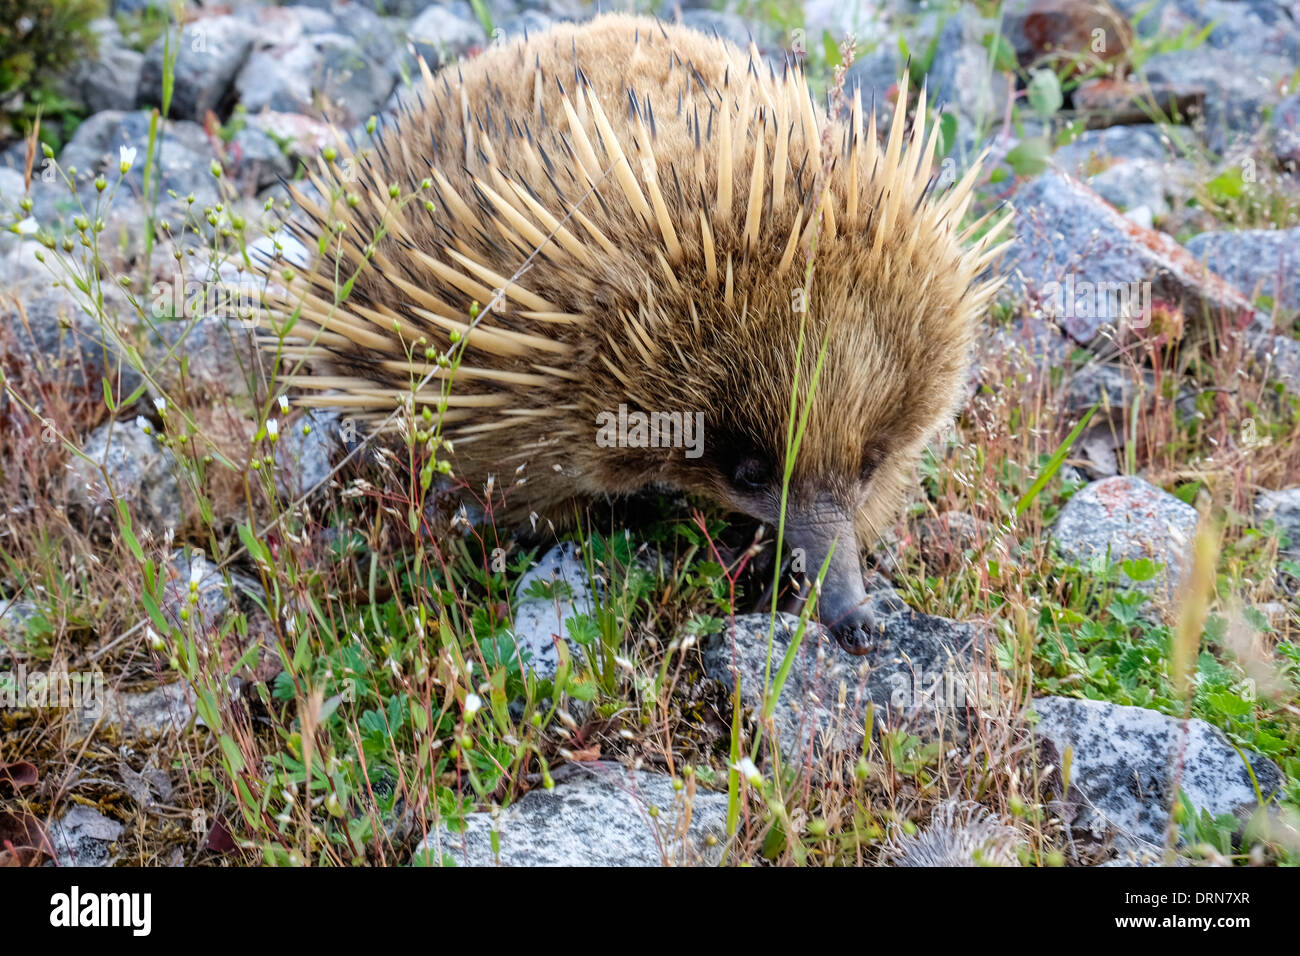 An Australian echidna, the spiny anteater foraging for insects - Stock Image